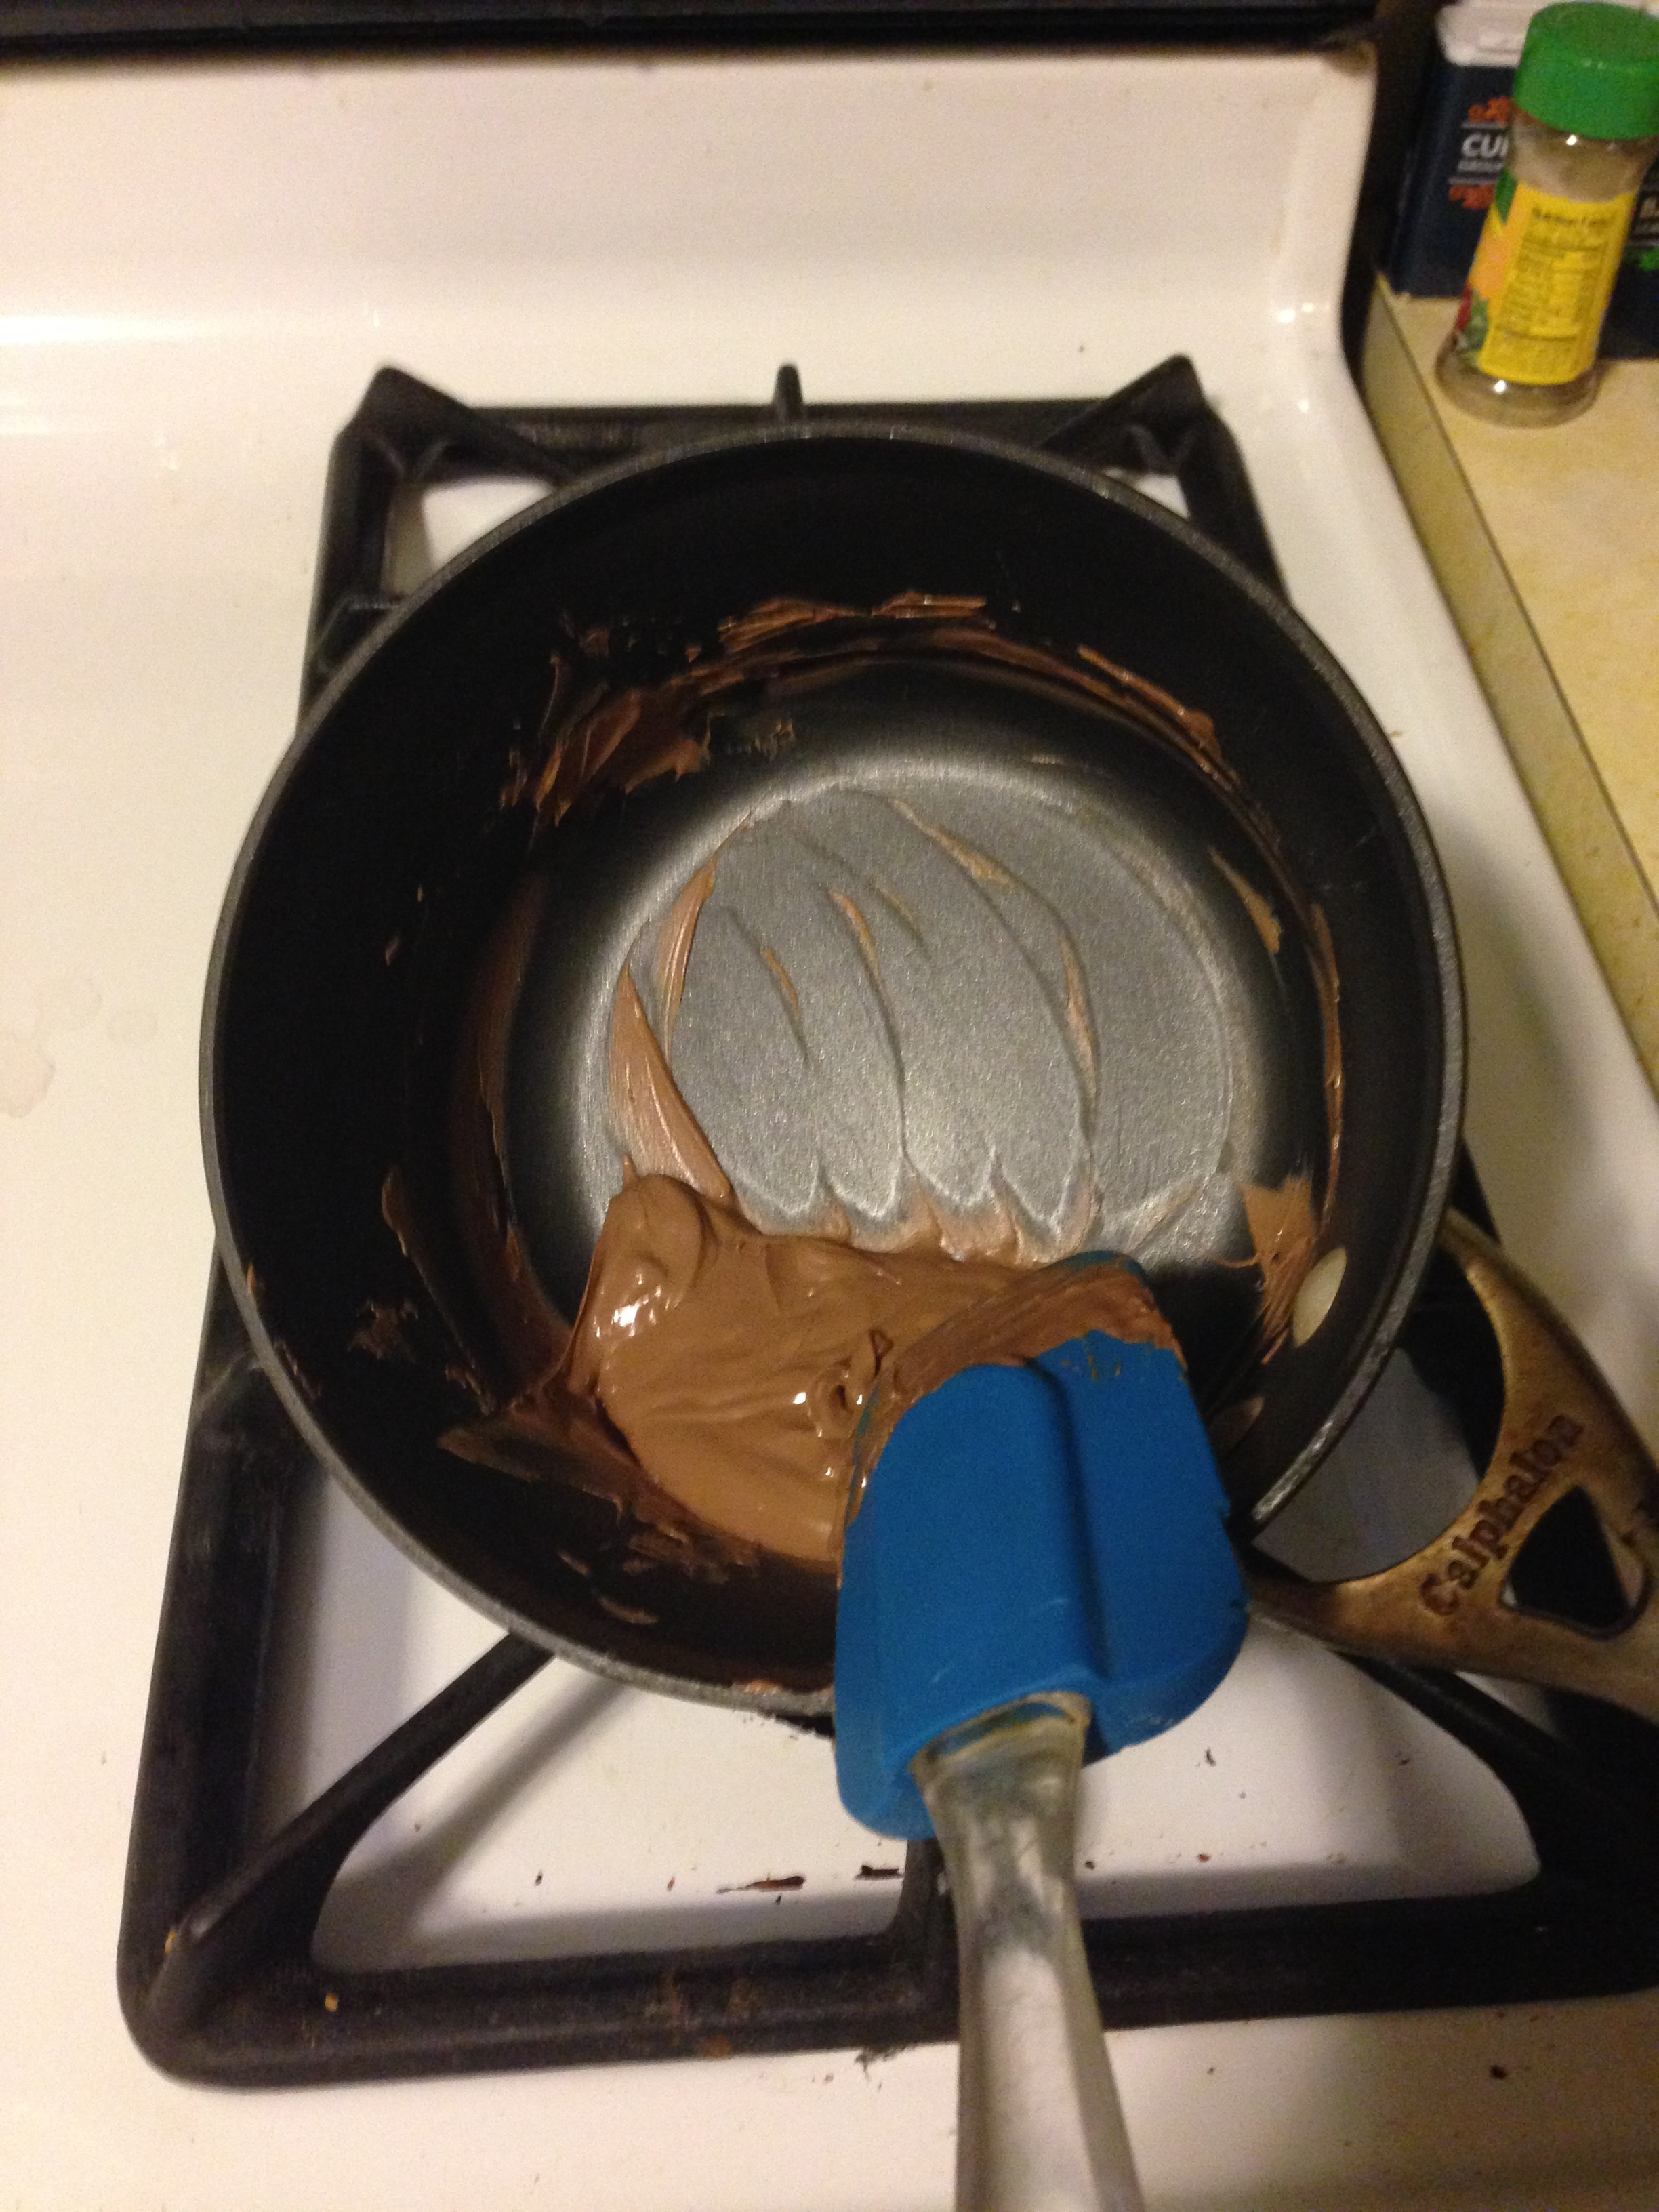 Melting chocolate, I really need a slow cooker or double boiler for this.